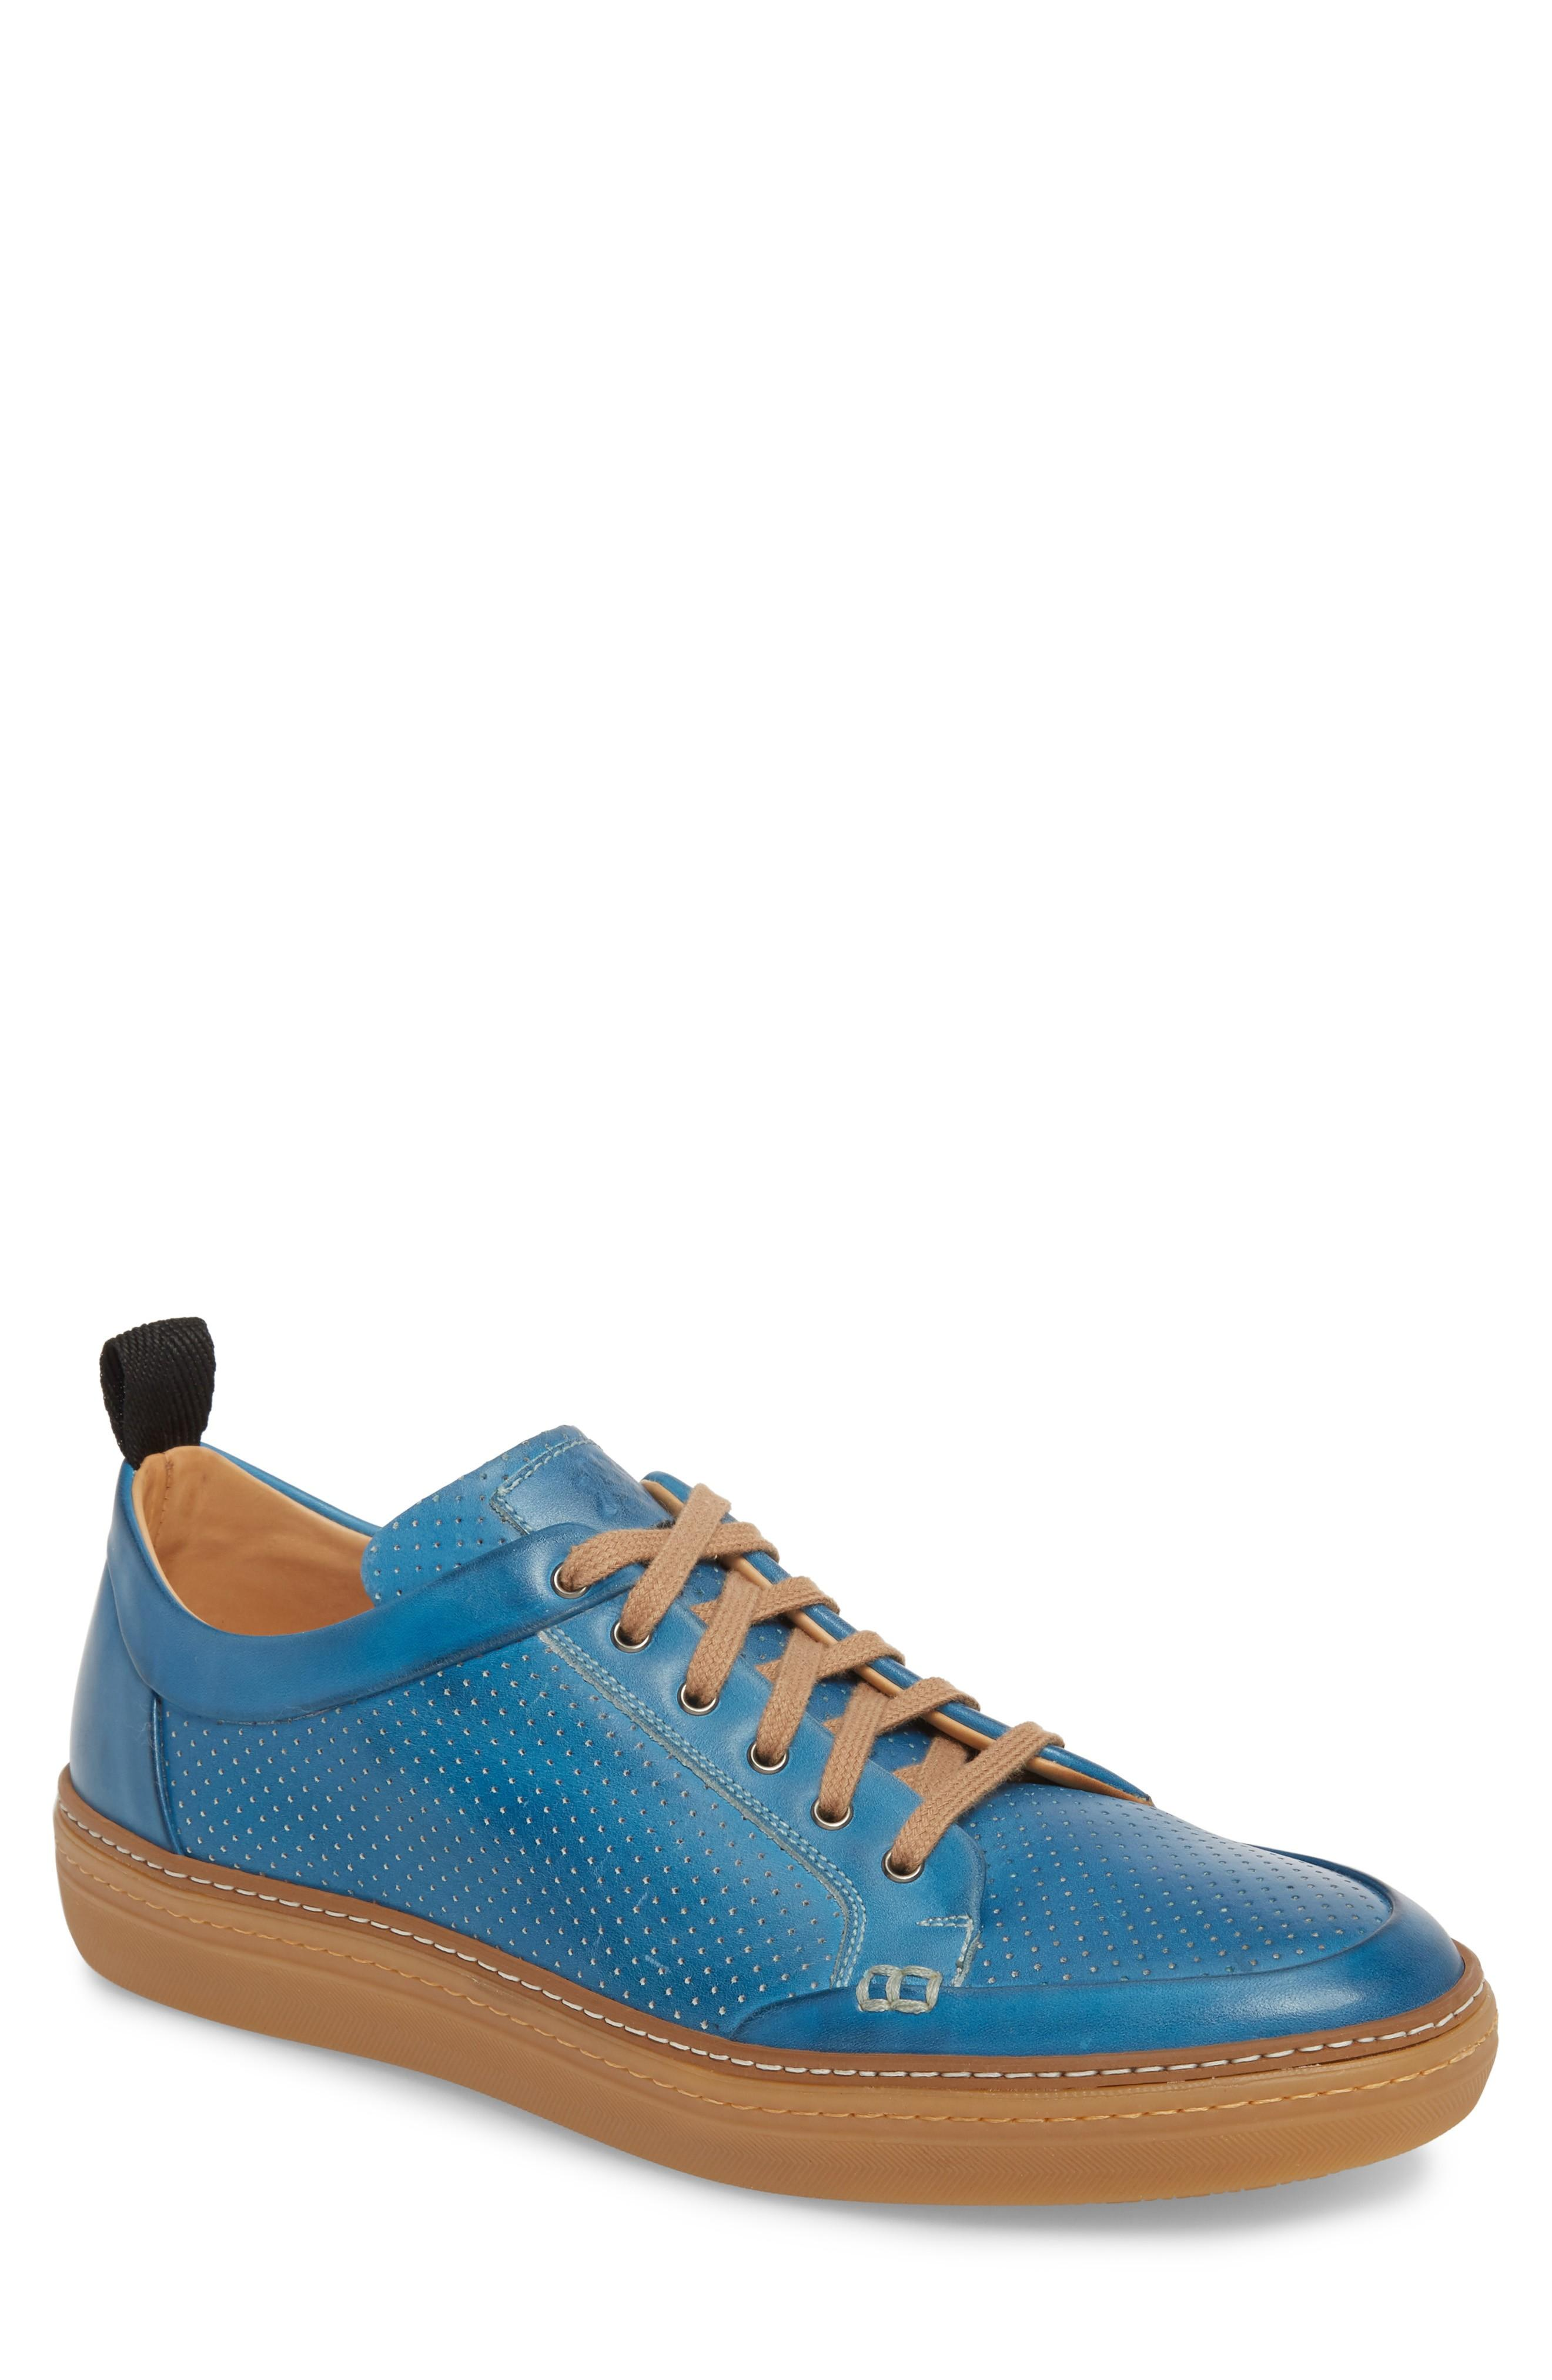 Mezlan Ceres Perforated Low Top Sneaker In Blue / Royal Blue Leather